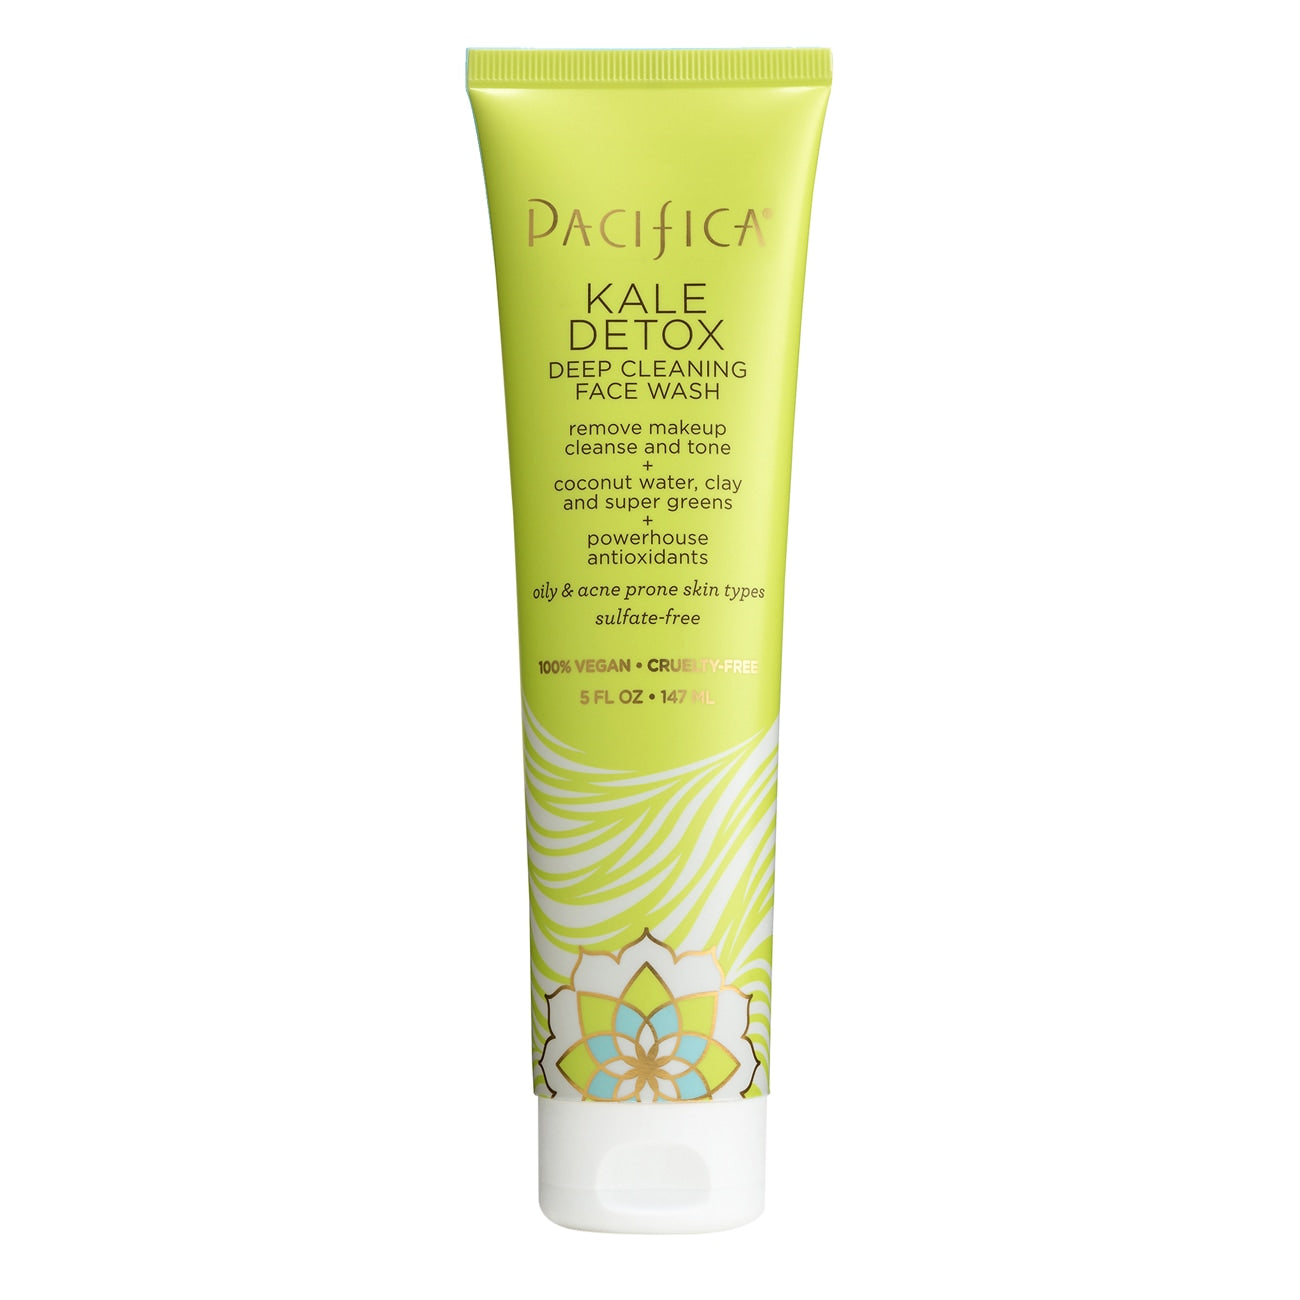 Kale Detox Deep Cleaning Face Wash-Pacifica